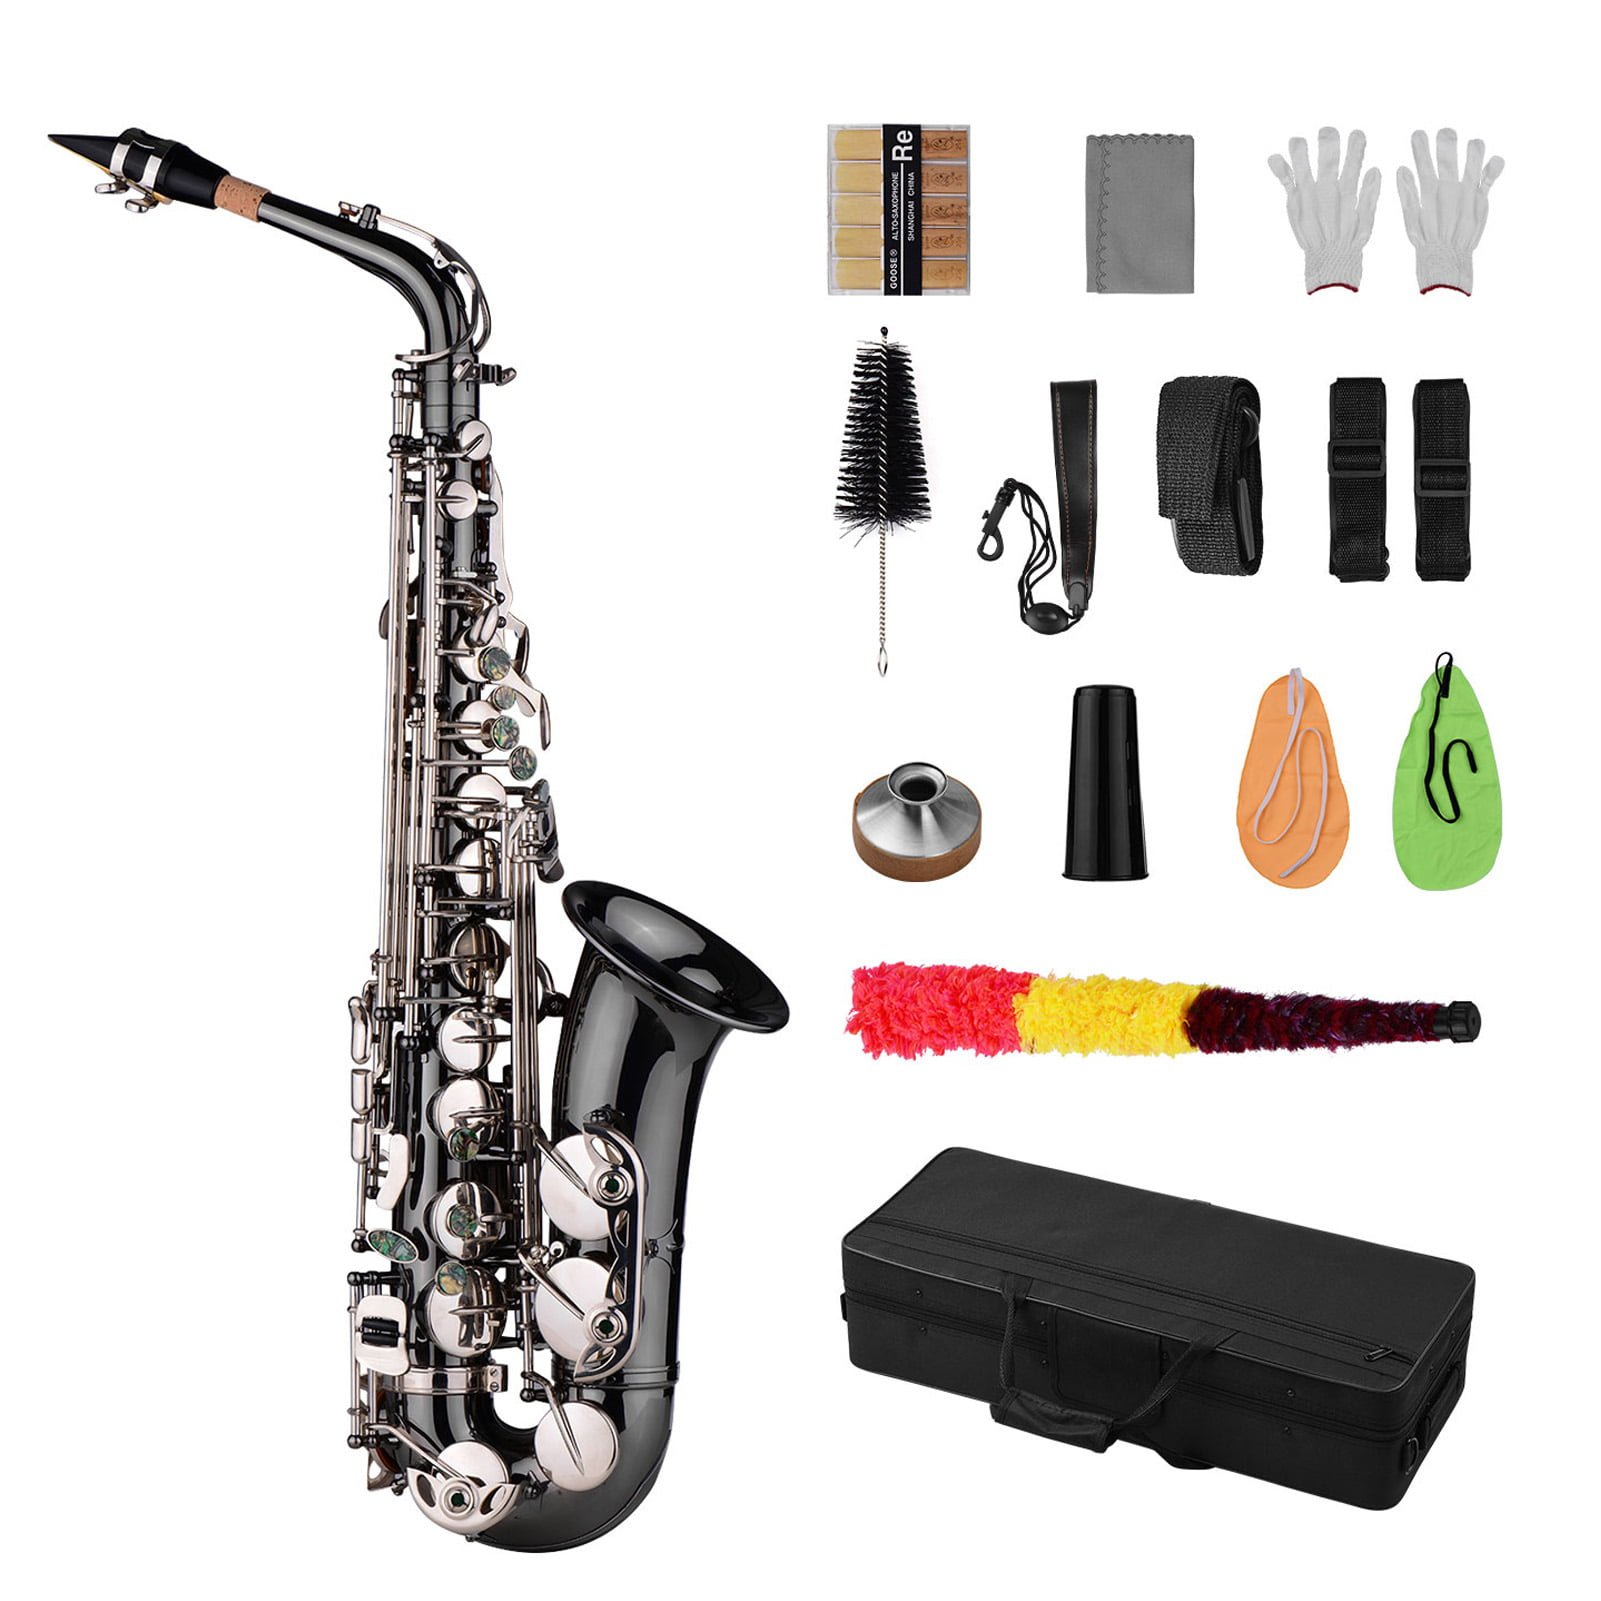 A Soft Saxophones Bend Neck Cleaning Brush Sax Clean Care Kit